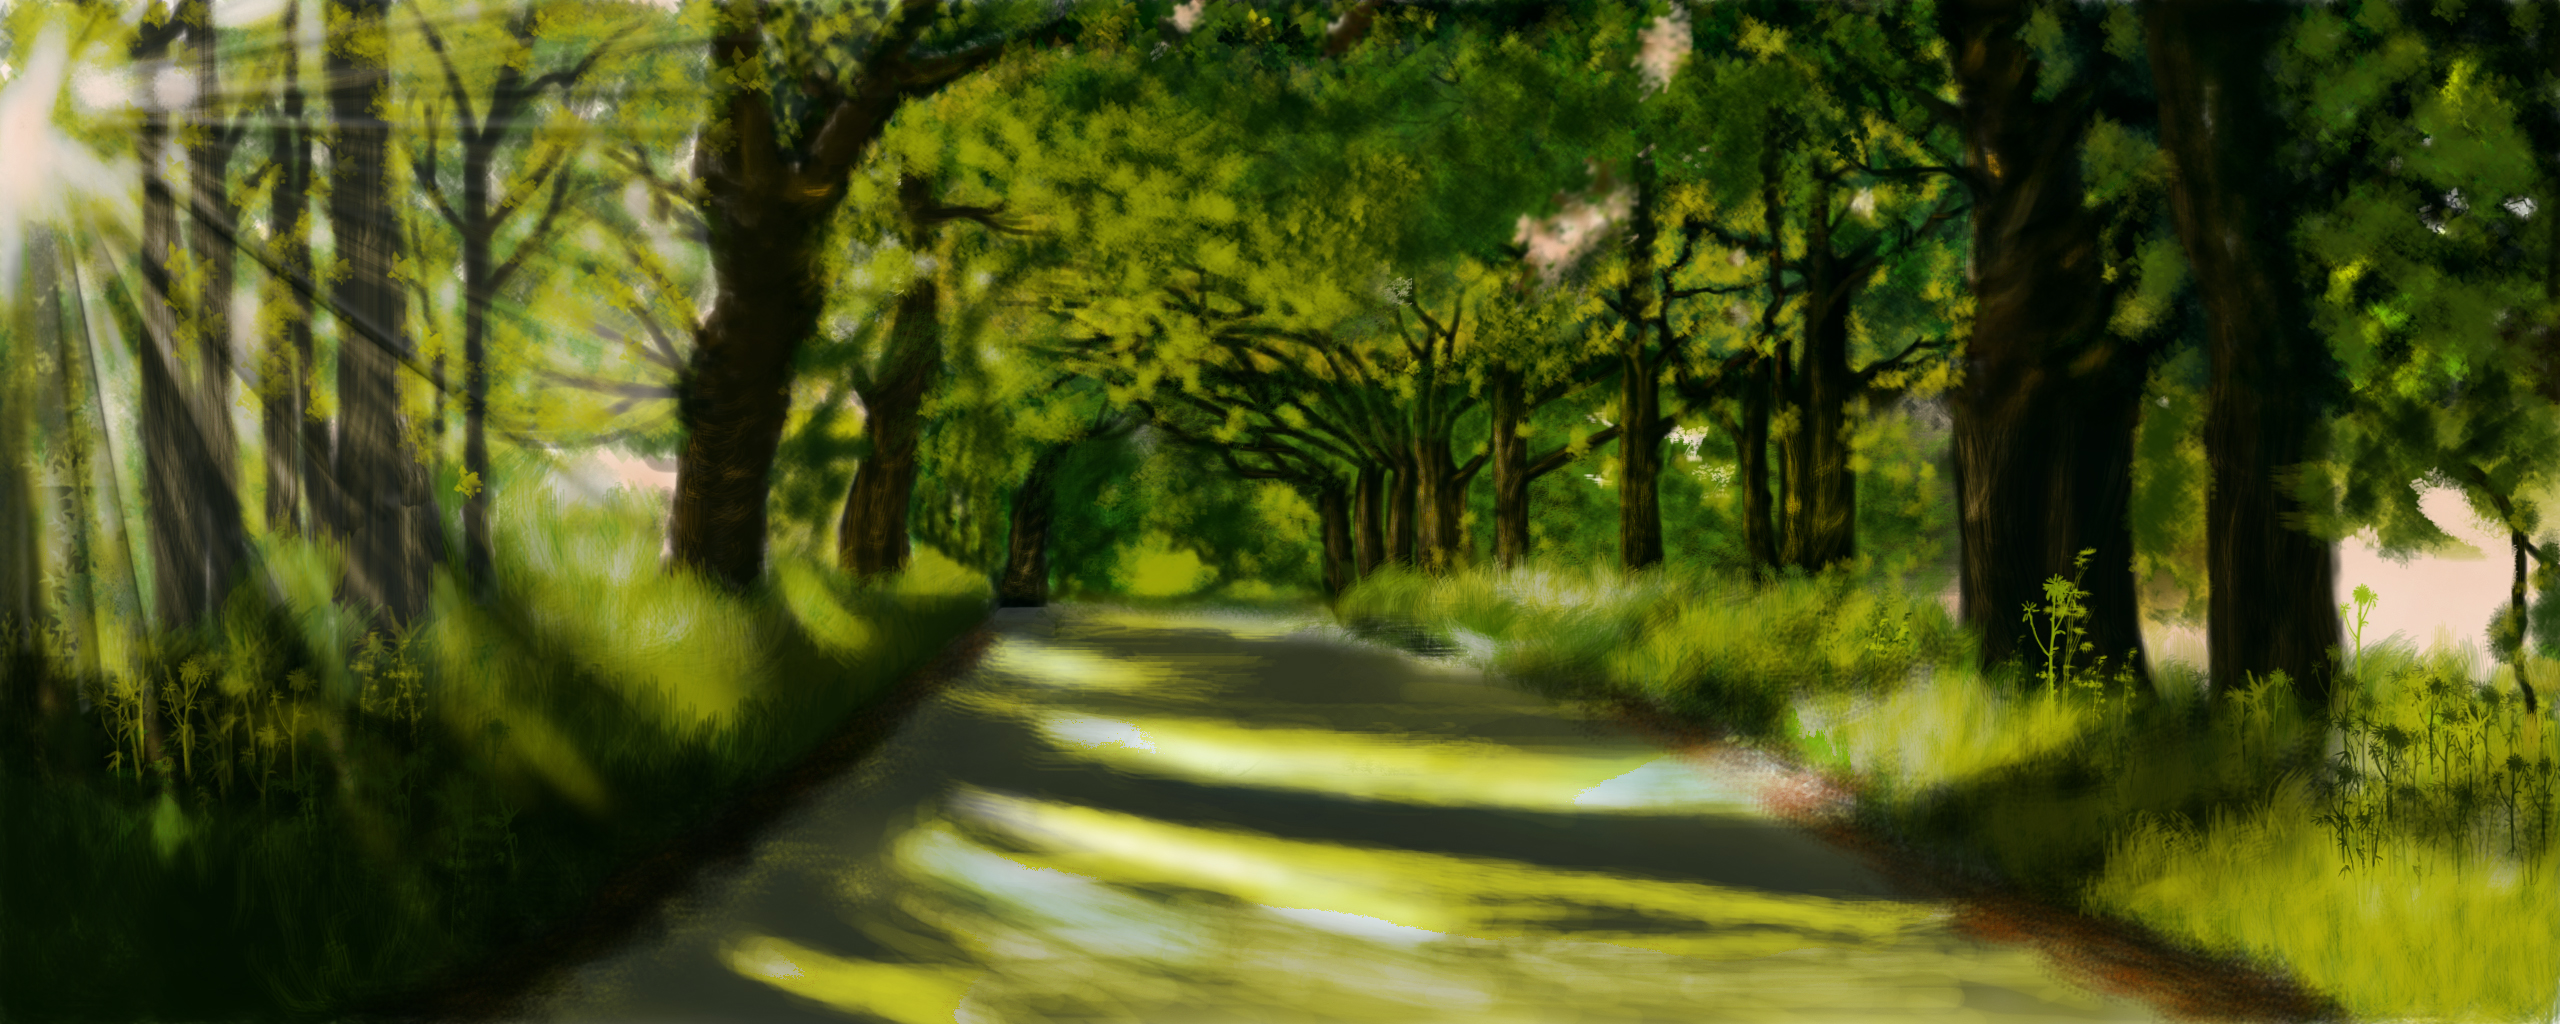 digital paintings scenery - photo #21